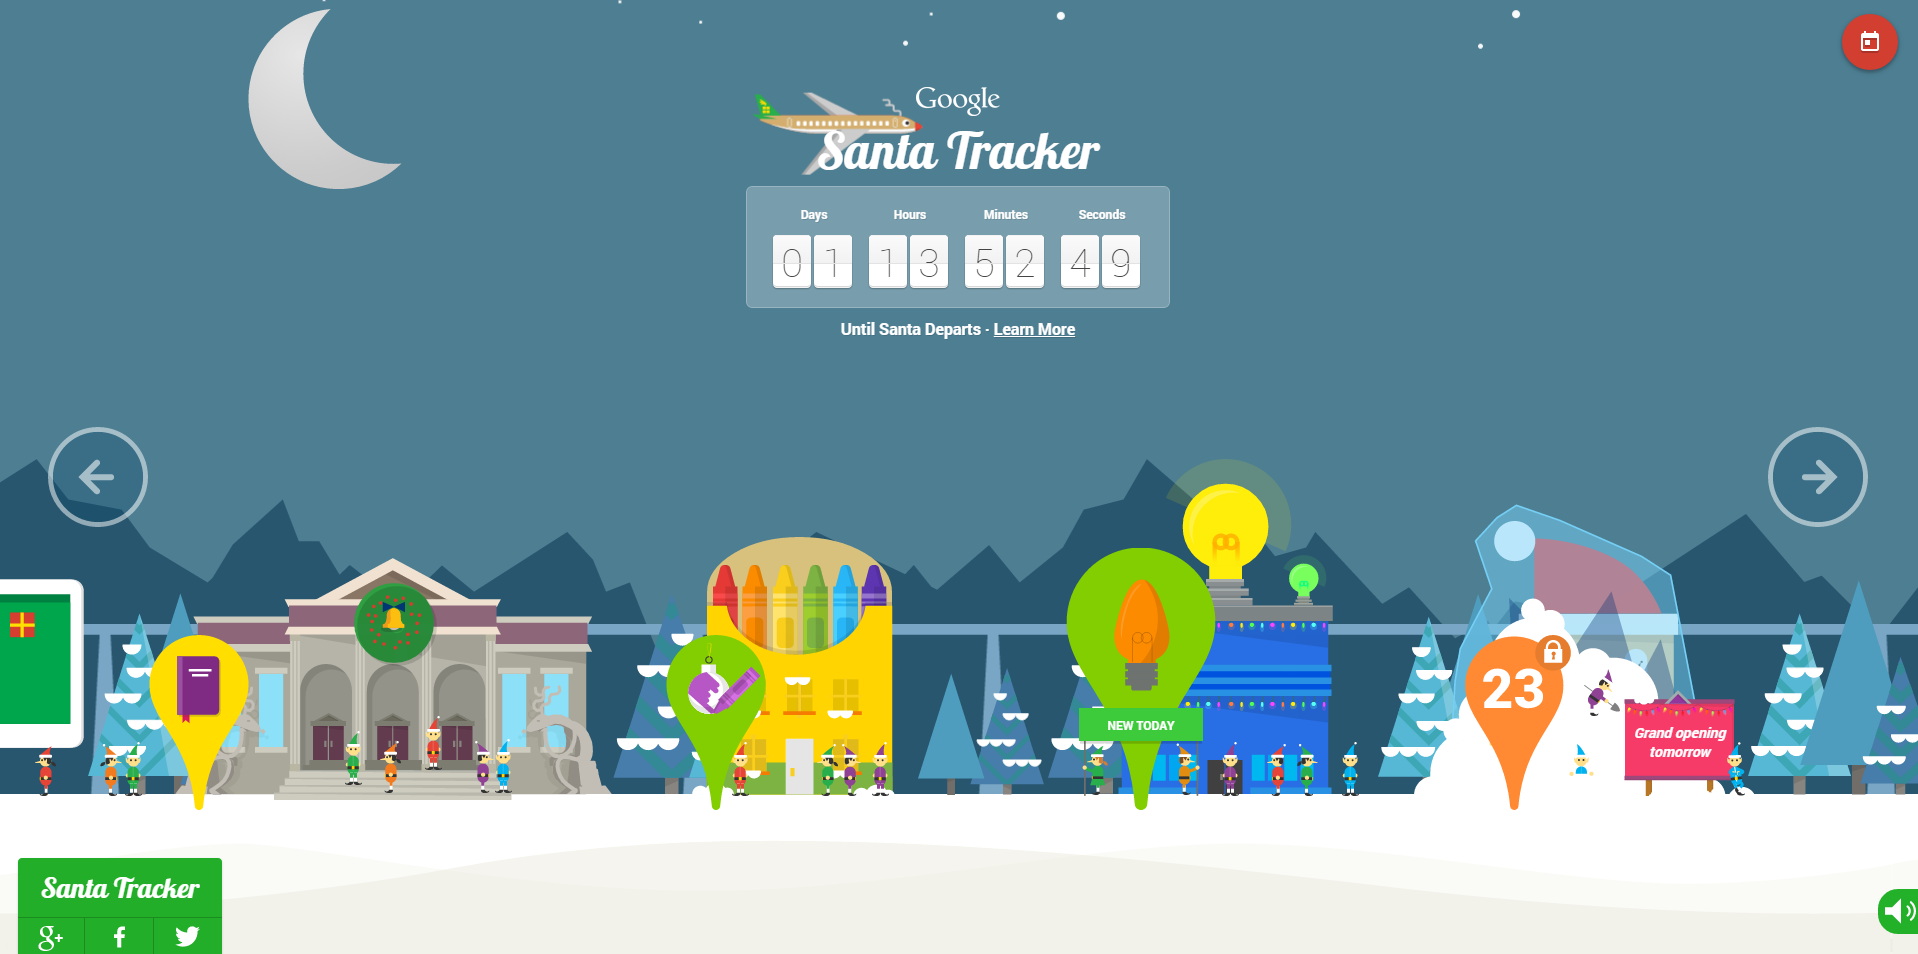 googles santa tracker website